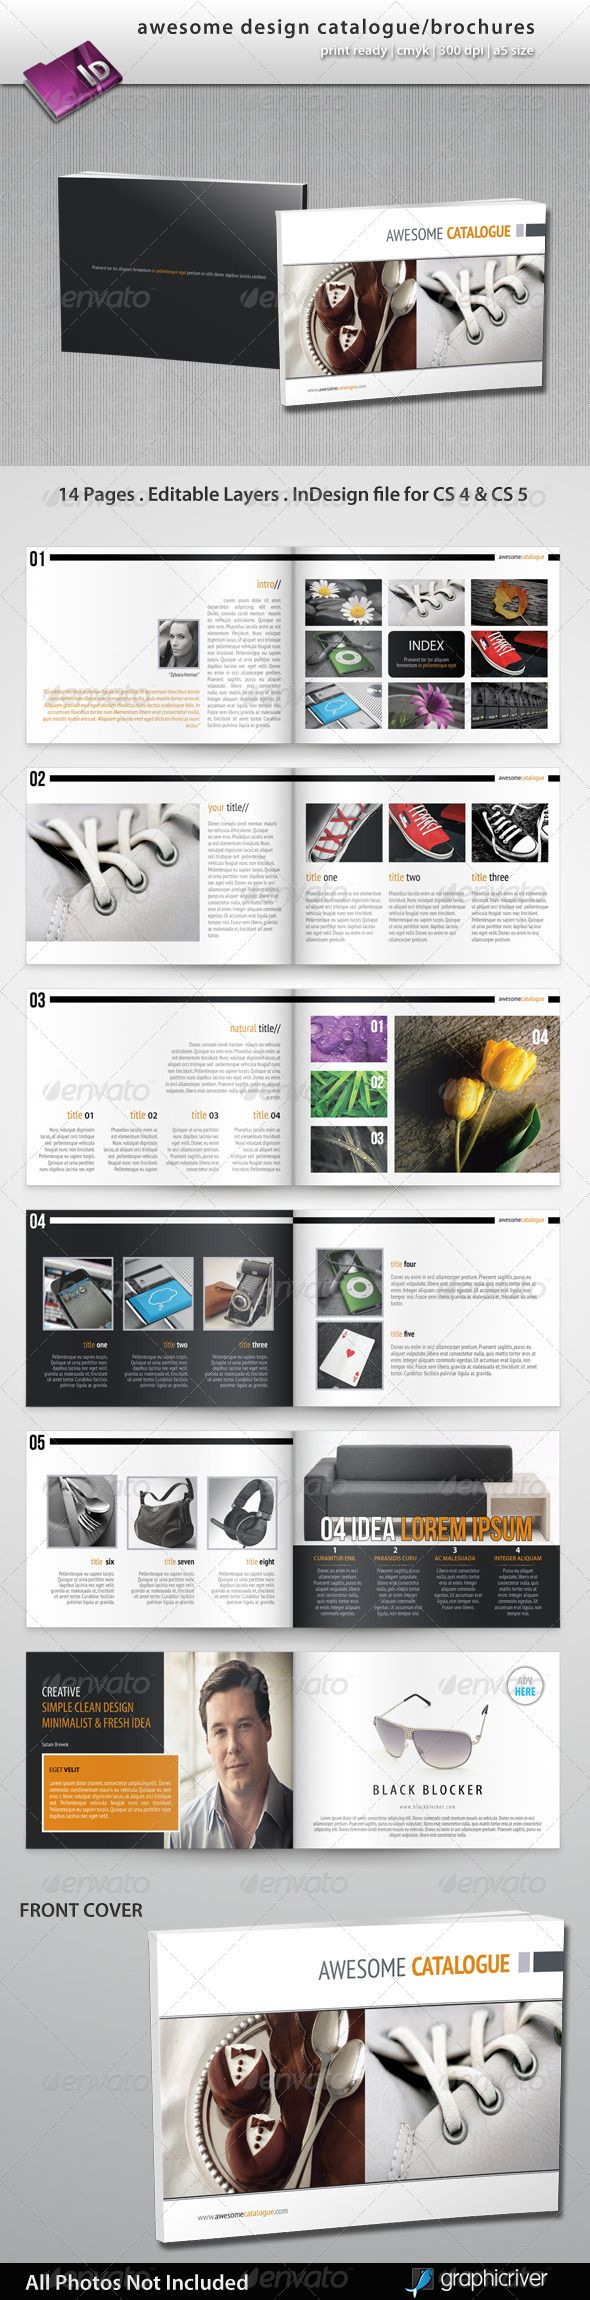 Awesome Design Catalogue/Brochures - GraphicRiver Item for Sale